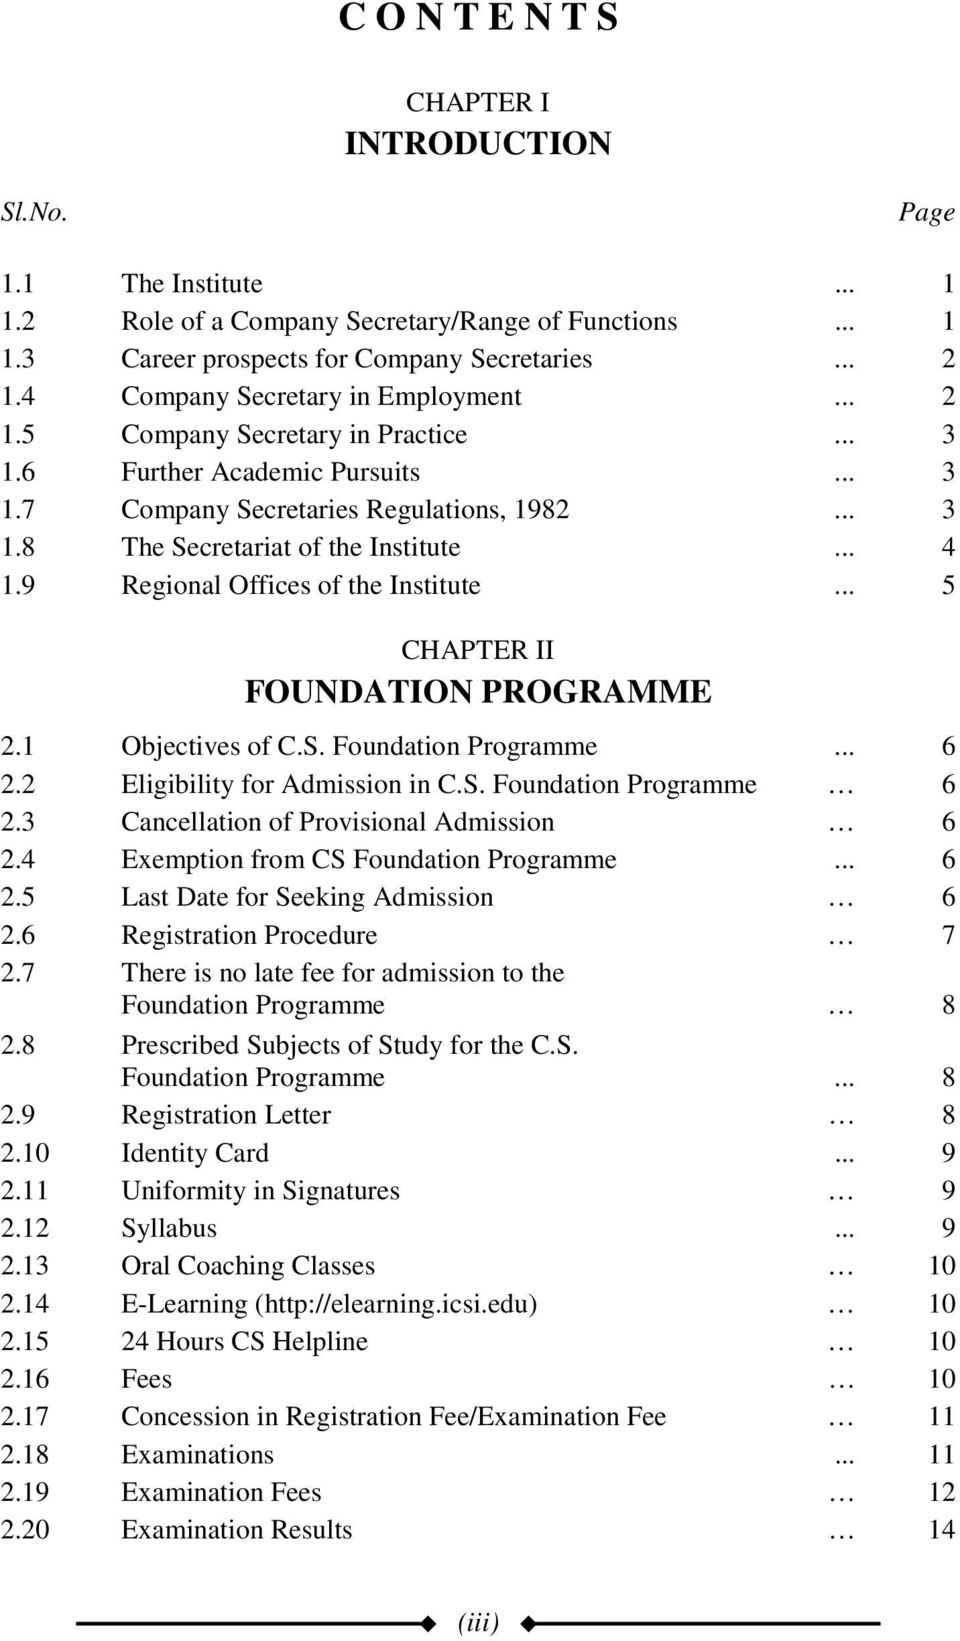 .. 4 1.9 Regional Offices of the Institute... 5 CHAPTER II FOUNDATION PROGRAMME 2.1 Objectives of C.S. Foundation Programme... 6 2.2 Eligibility for Admission in C.S. Foundation Programme 6 2.